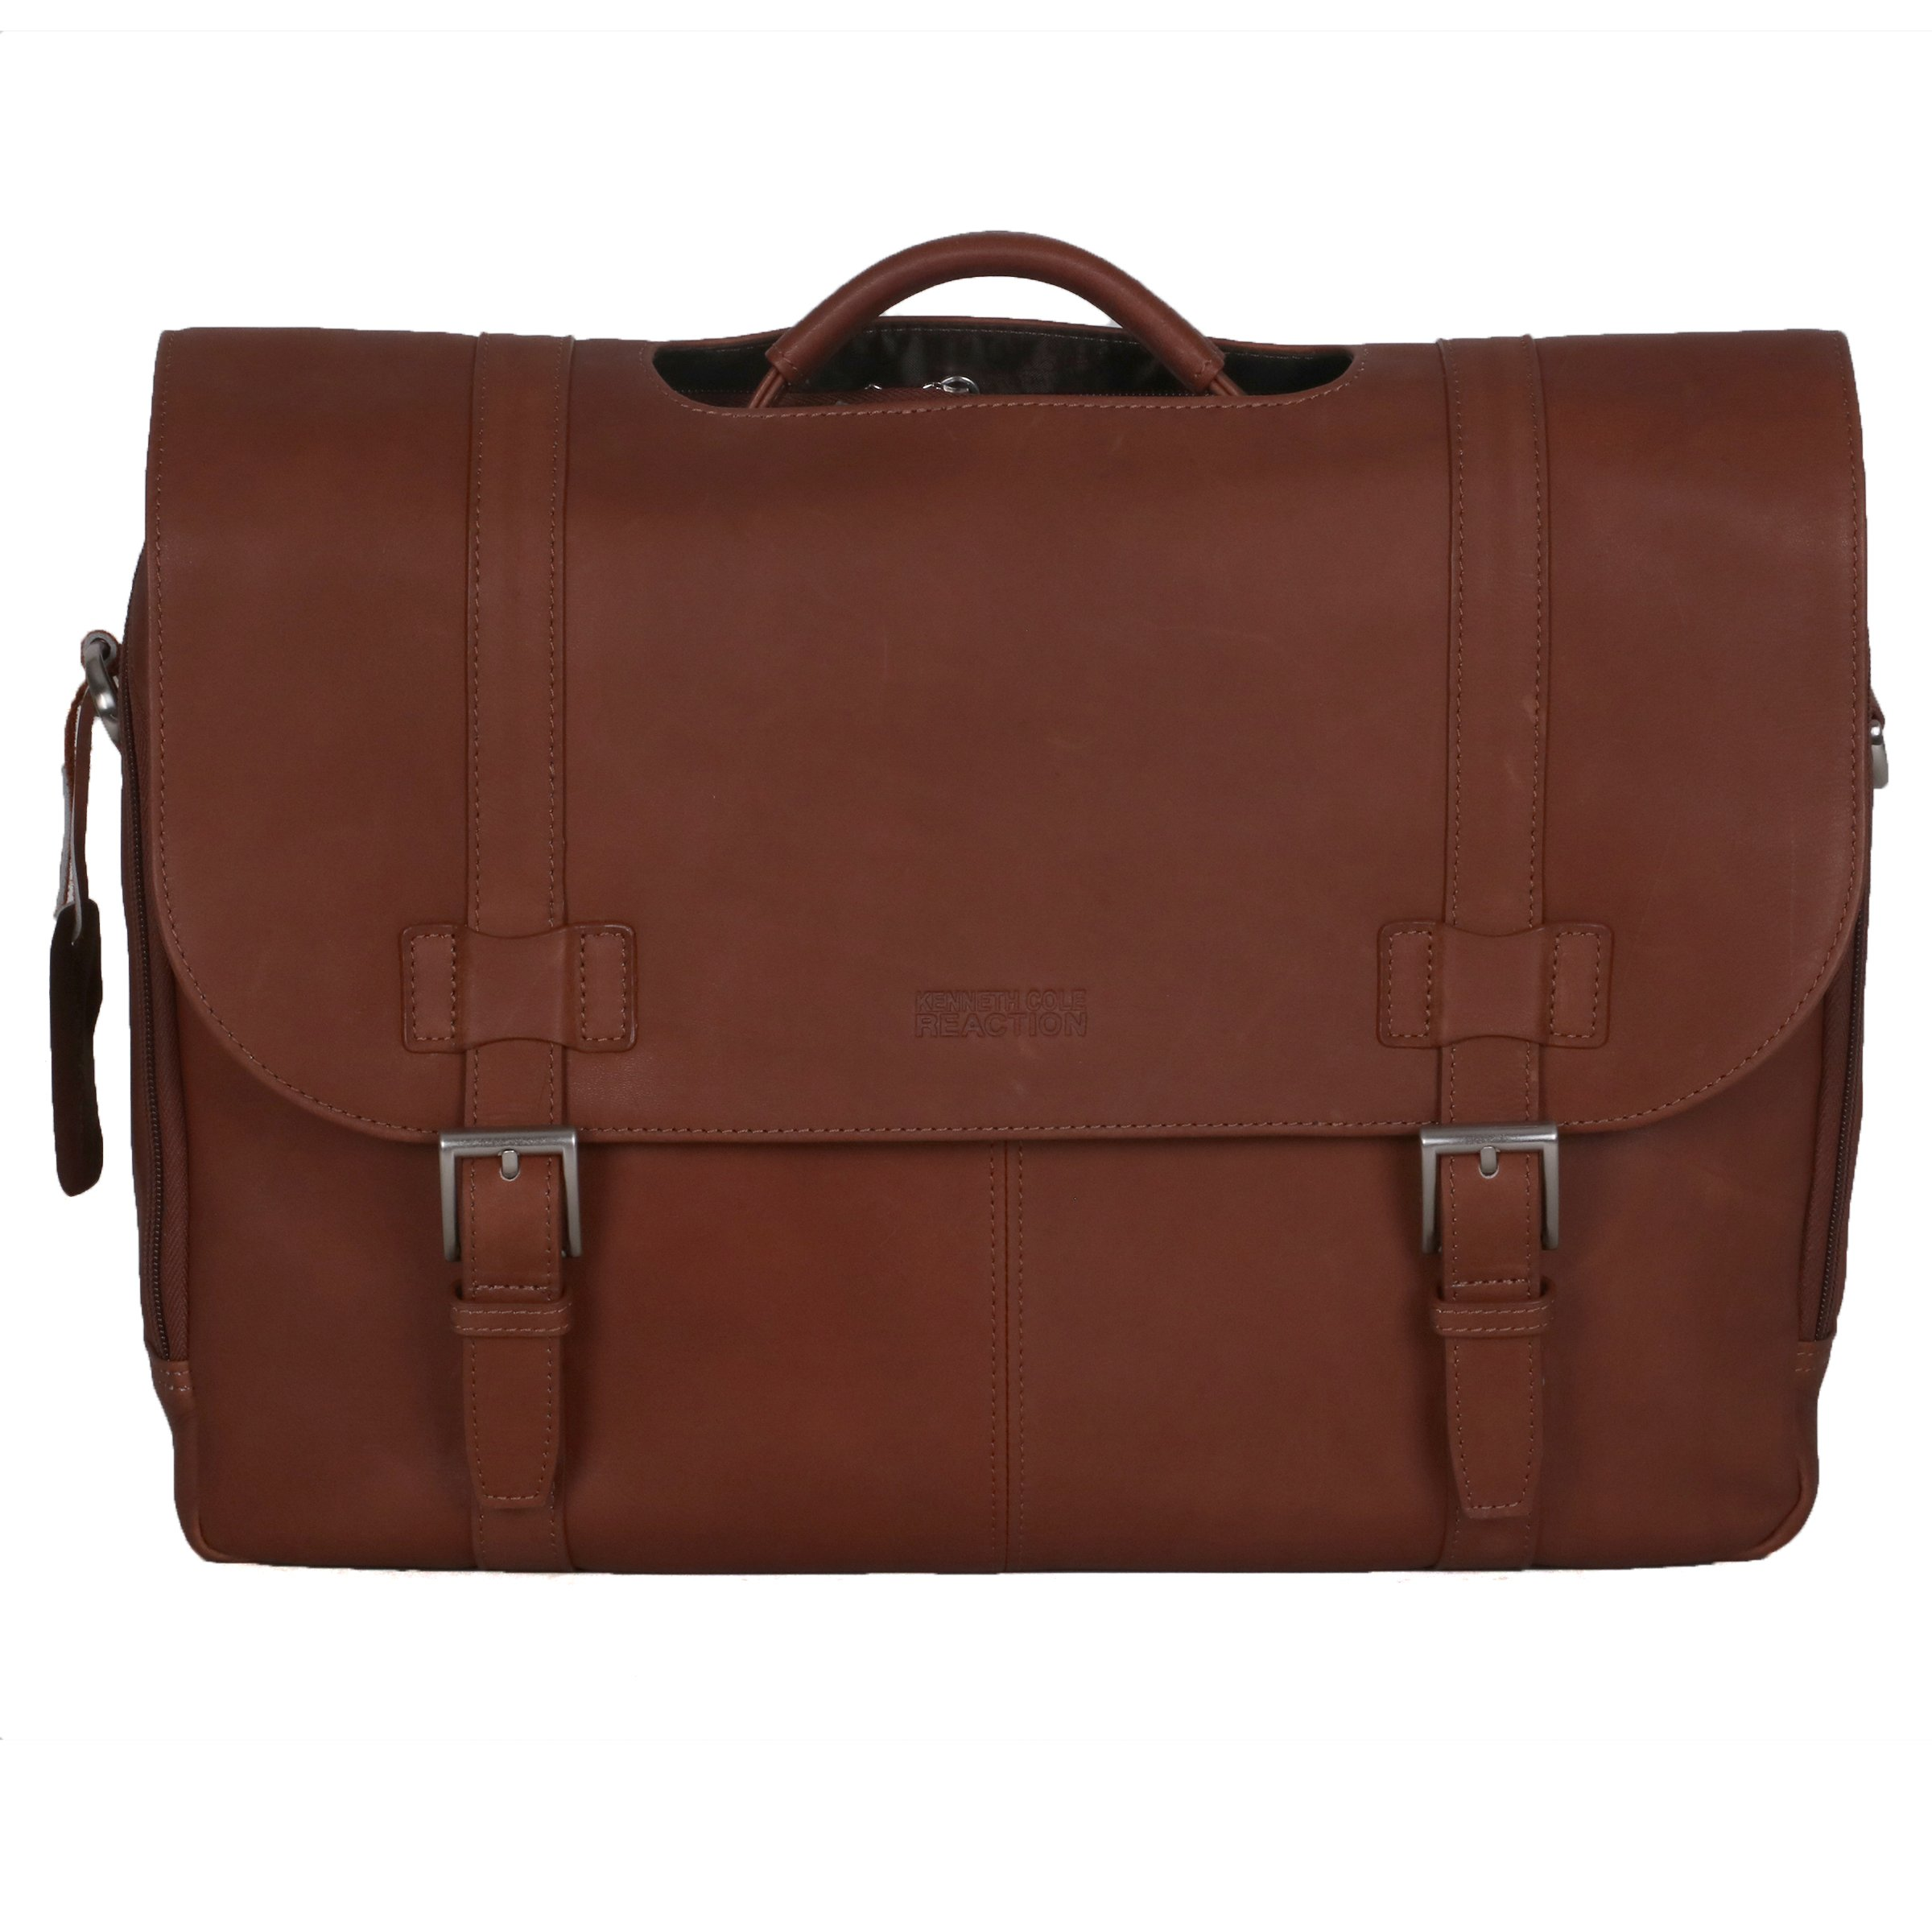 Kenneth Cole Reaction ''Show Business'' Colombian Leather Double Compartment Flapover Portfolio/Computer Case With Pull Through Handle/ Fits Most  15.4'' Laptops, Cognac, One Size by Kenneth Cole REACTION